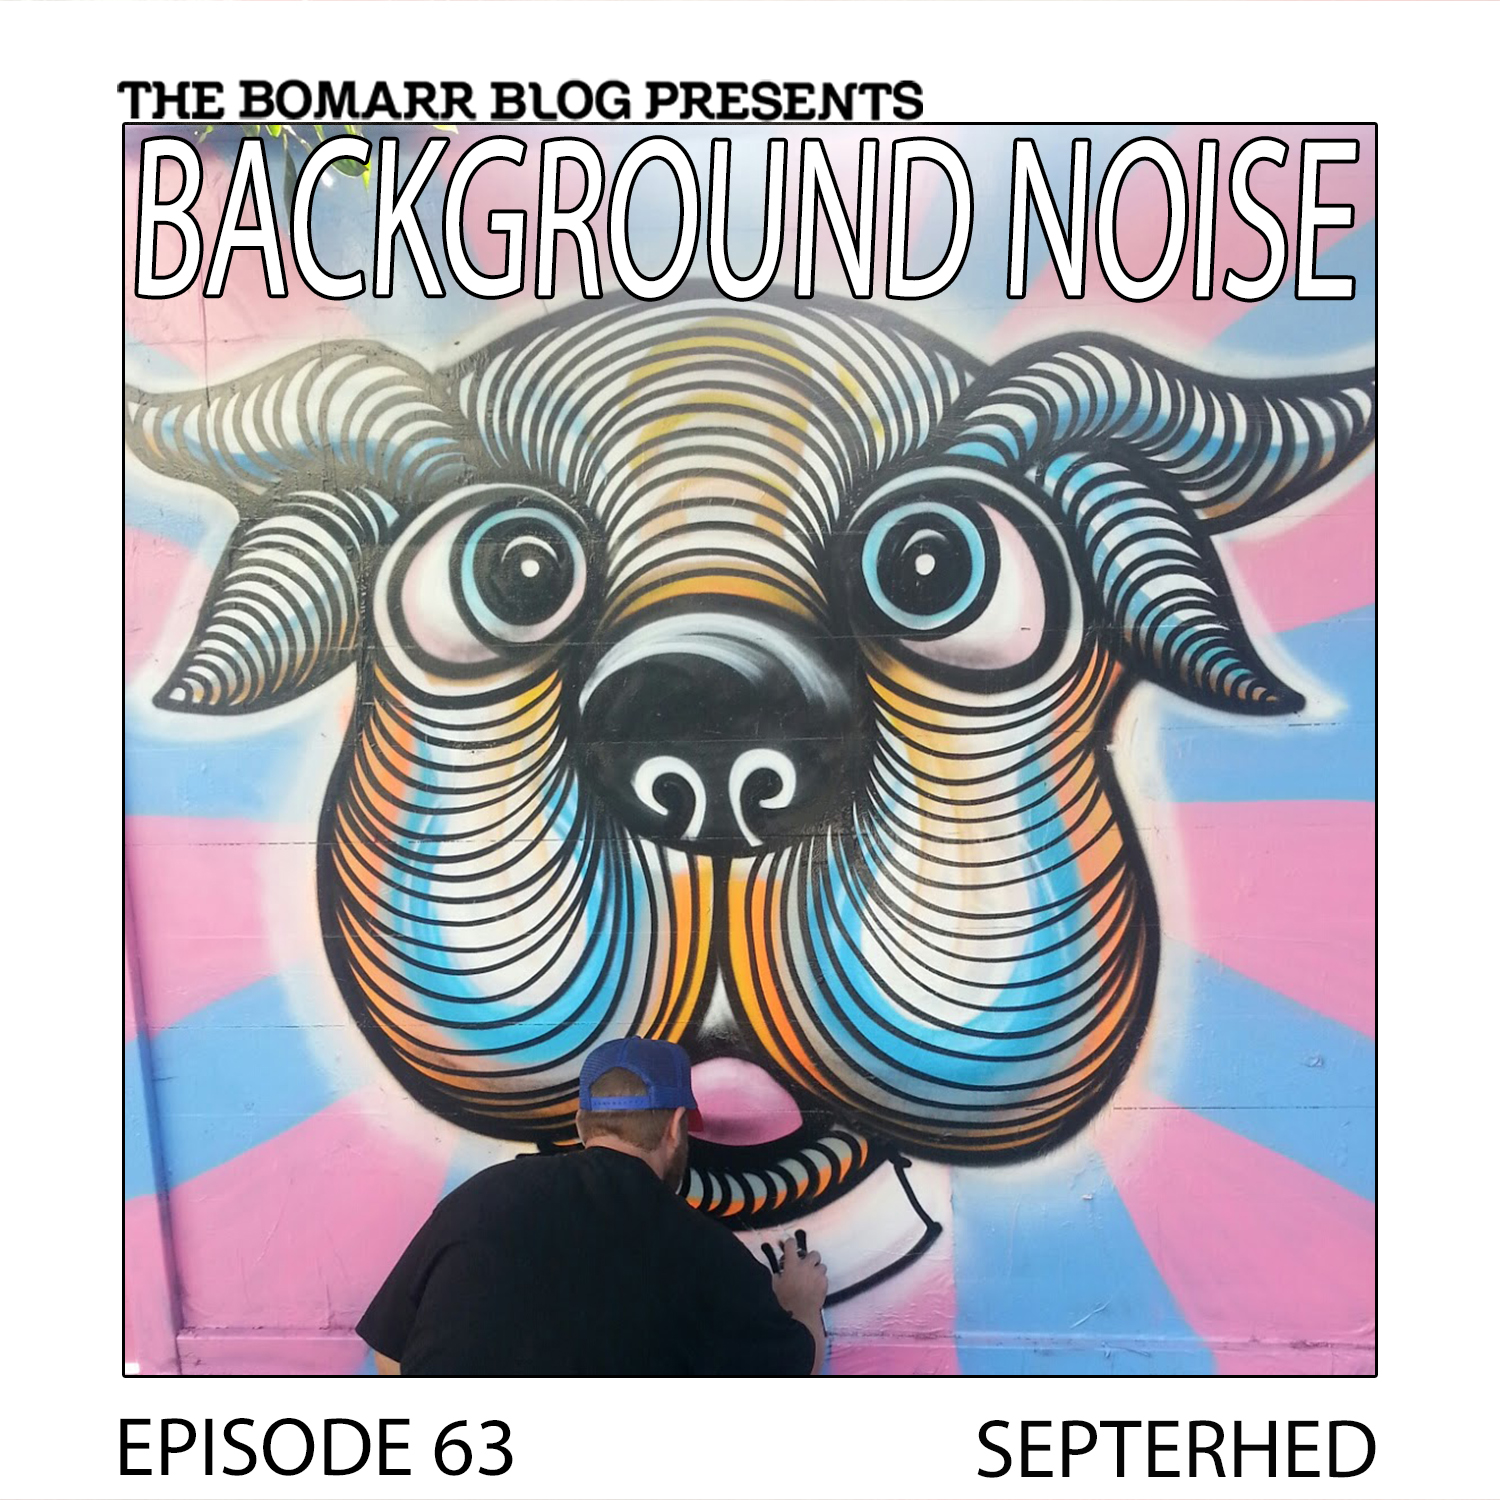 THE BACKGROUND NOISE PODCAST SERIES FOCUSES ON THE MUSIC THAT ARTISTS LISTEN TO WHEN THEY WORK, WHAT MUSIC INSPIRES THEM, OR JUST MUSIC THEY LIKE. THIS WEEK, IN EPISODE 63, THE FOCUS IS ON ARTIST SEPTERHED.